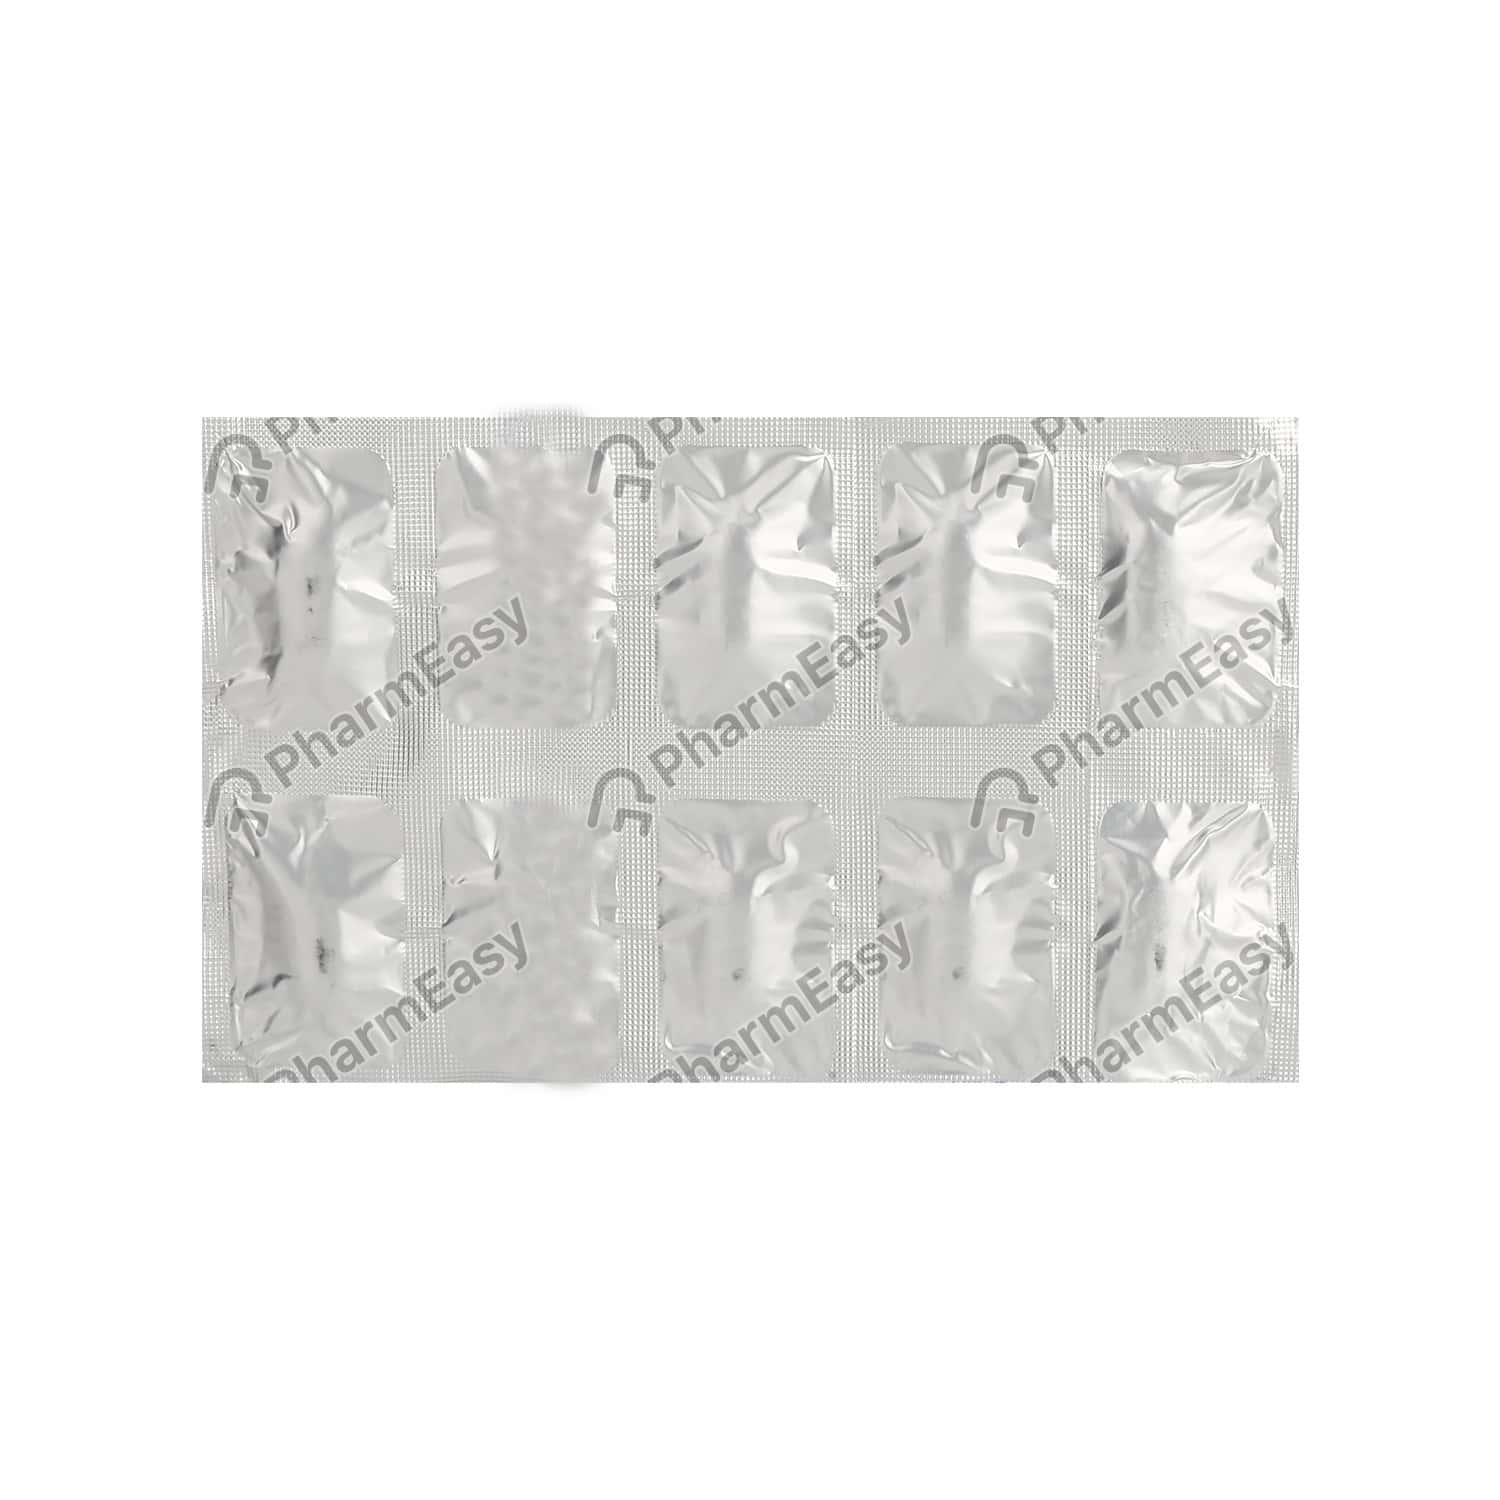 Broclear Strip Of 10 Tablets